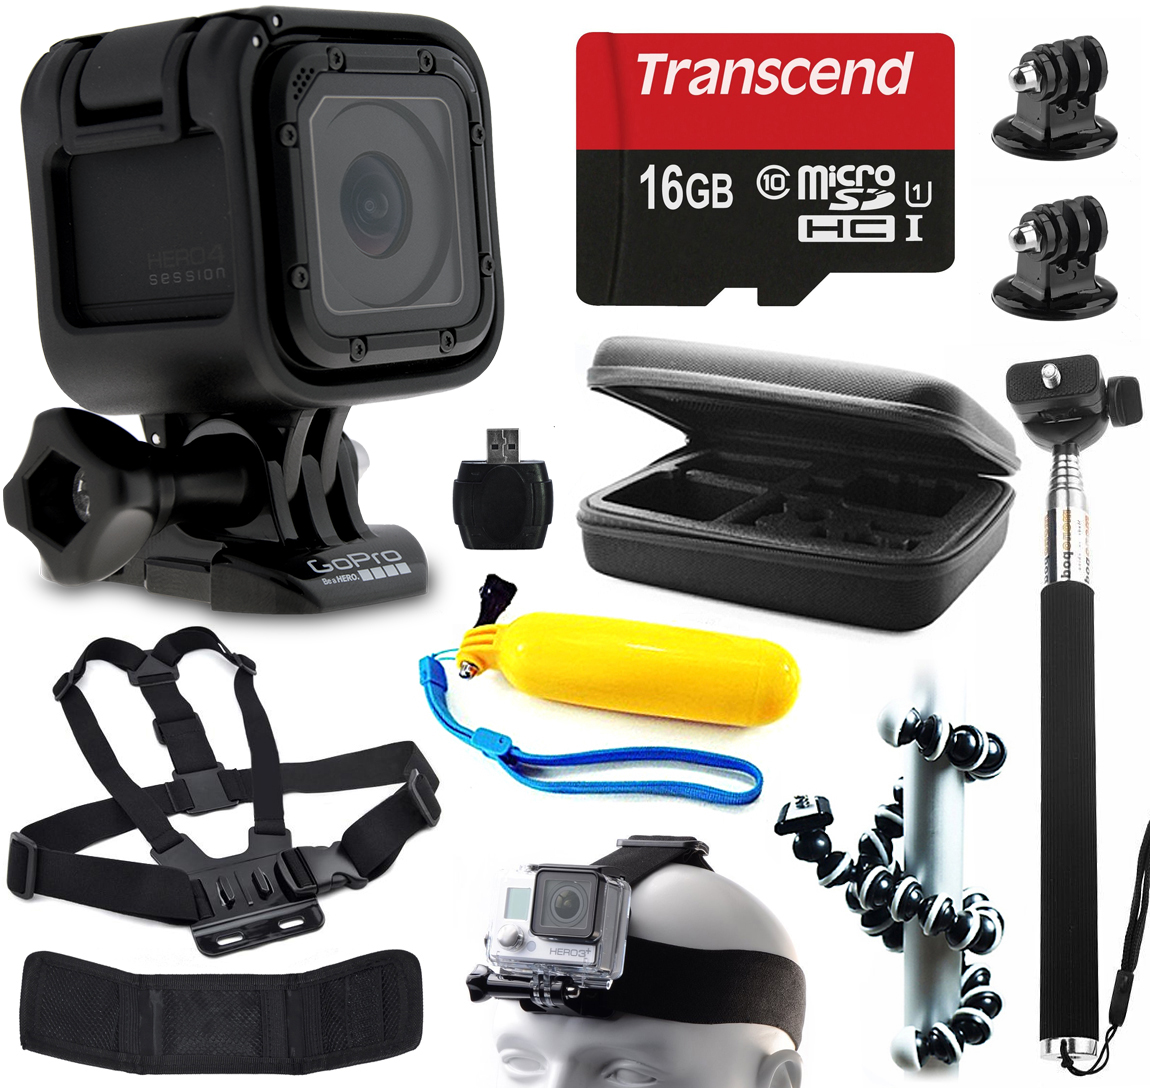 GoPro HERO4 Session HD Action Camera (CHDHS-101) with 11 Piece Accessories Bundle includes 16GB Card + Selfie Stick + Case + Head/Chest Strap + Floating Bobber + Octopus Tripod + Card Reader + More